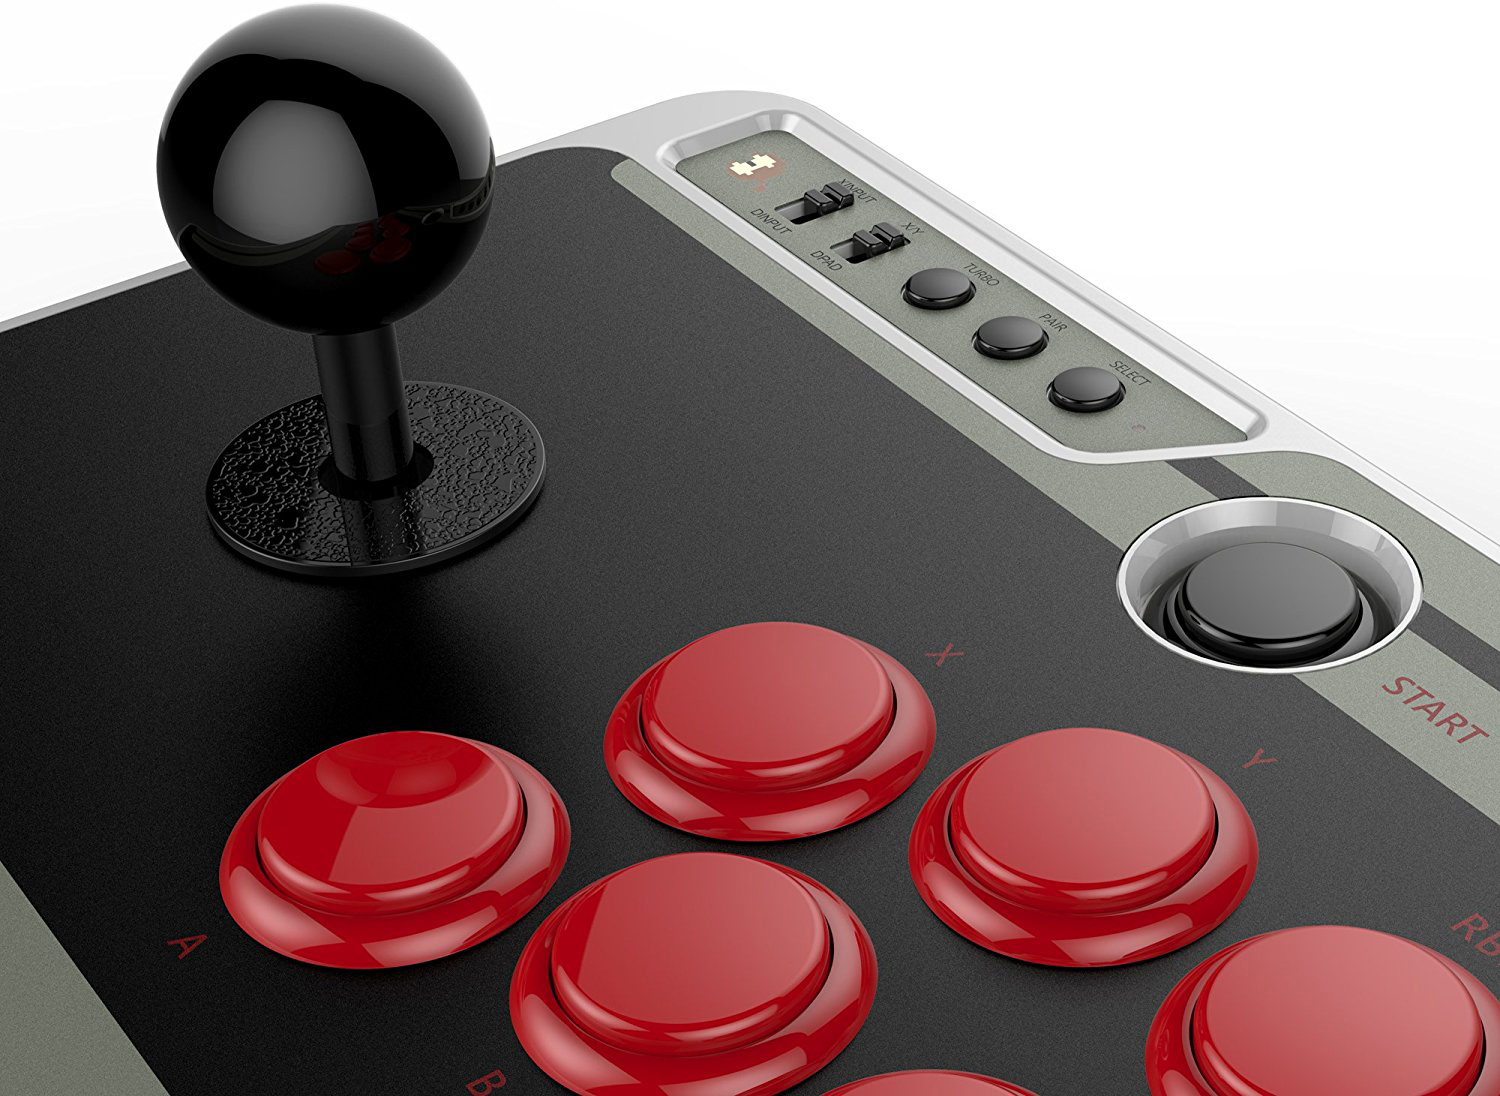 8Bitdo NES30 Arcade Stick 7 out of 11 image gallery